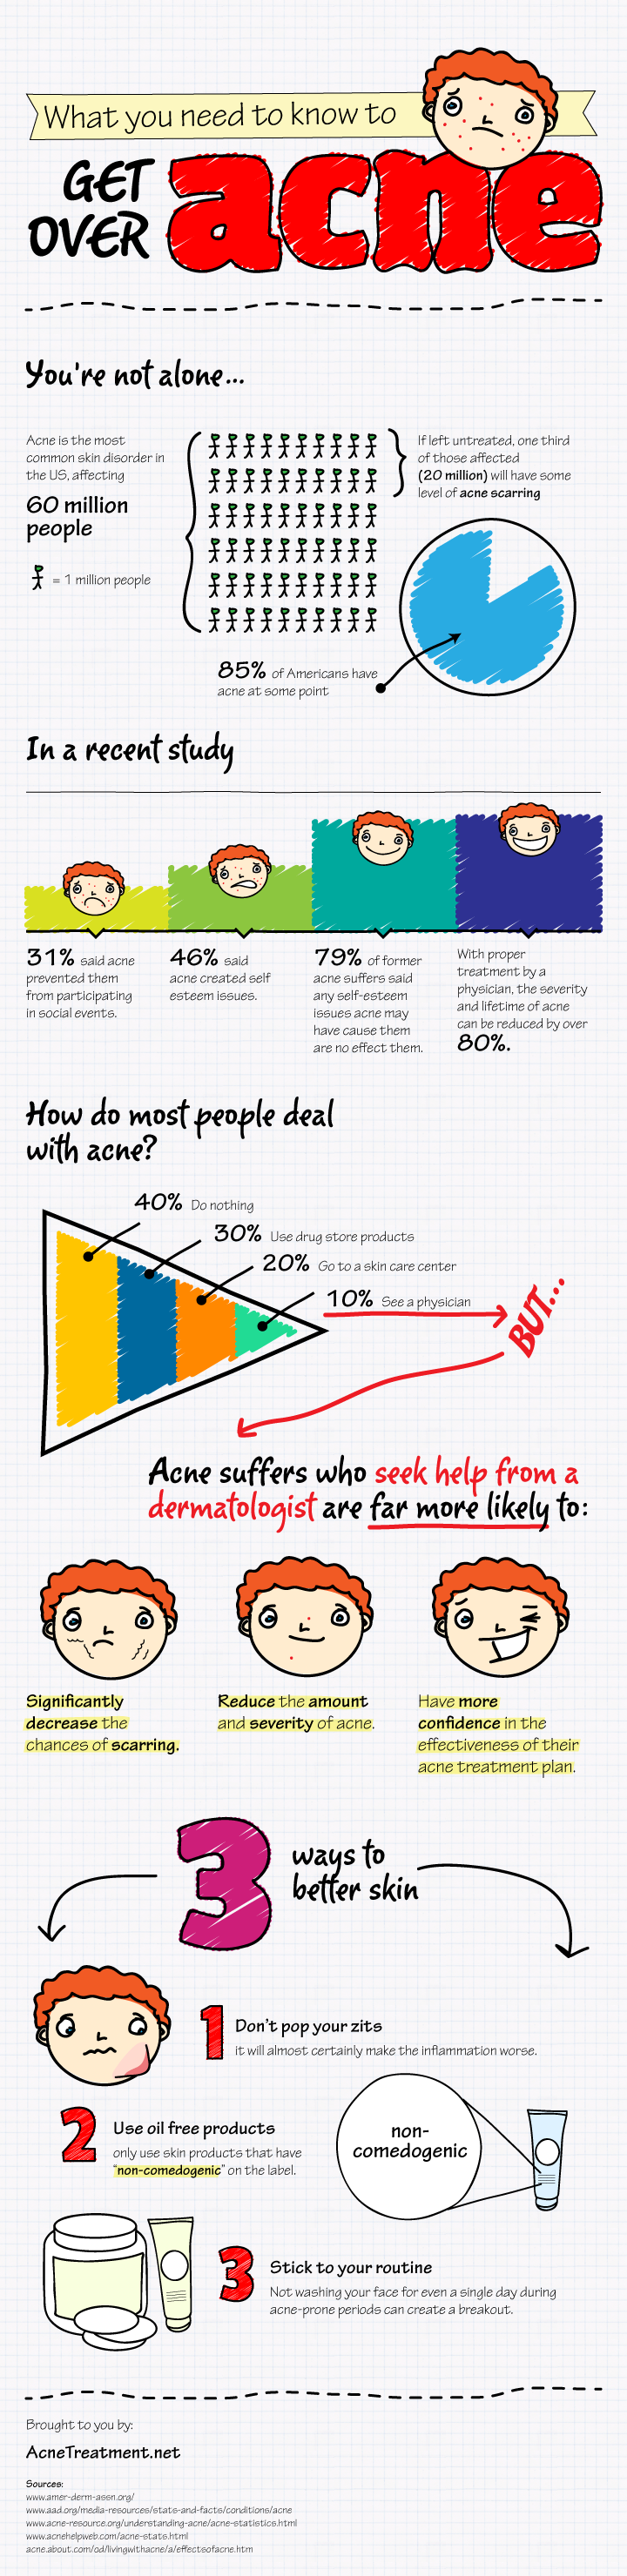 acne-advice-infographic